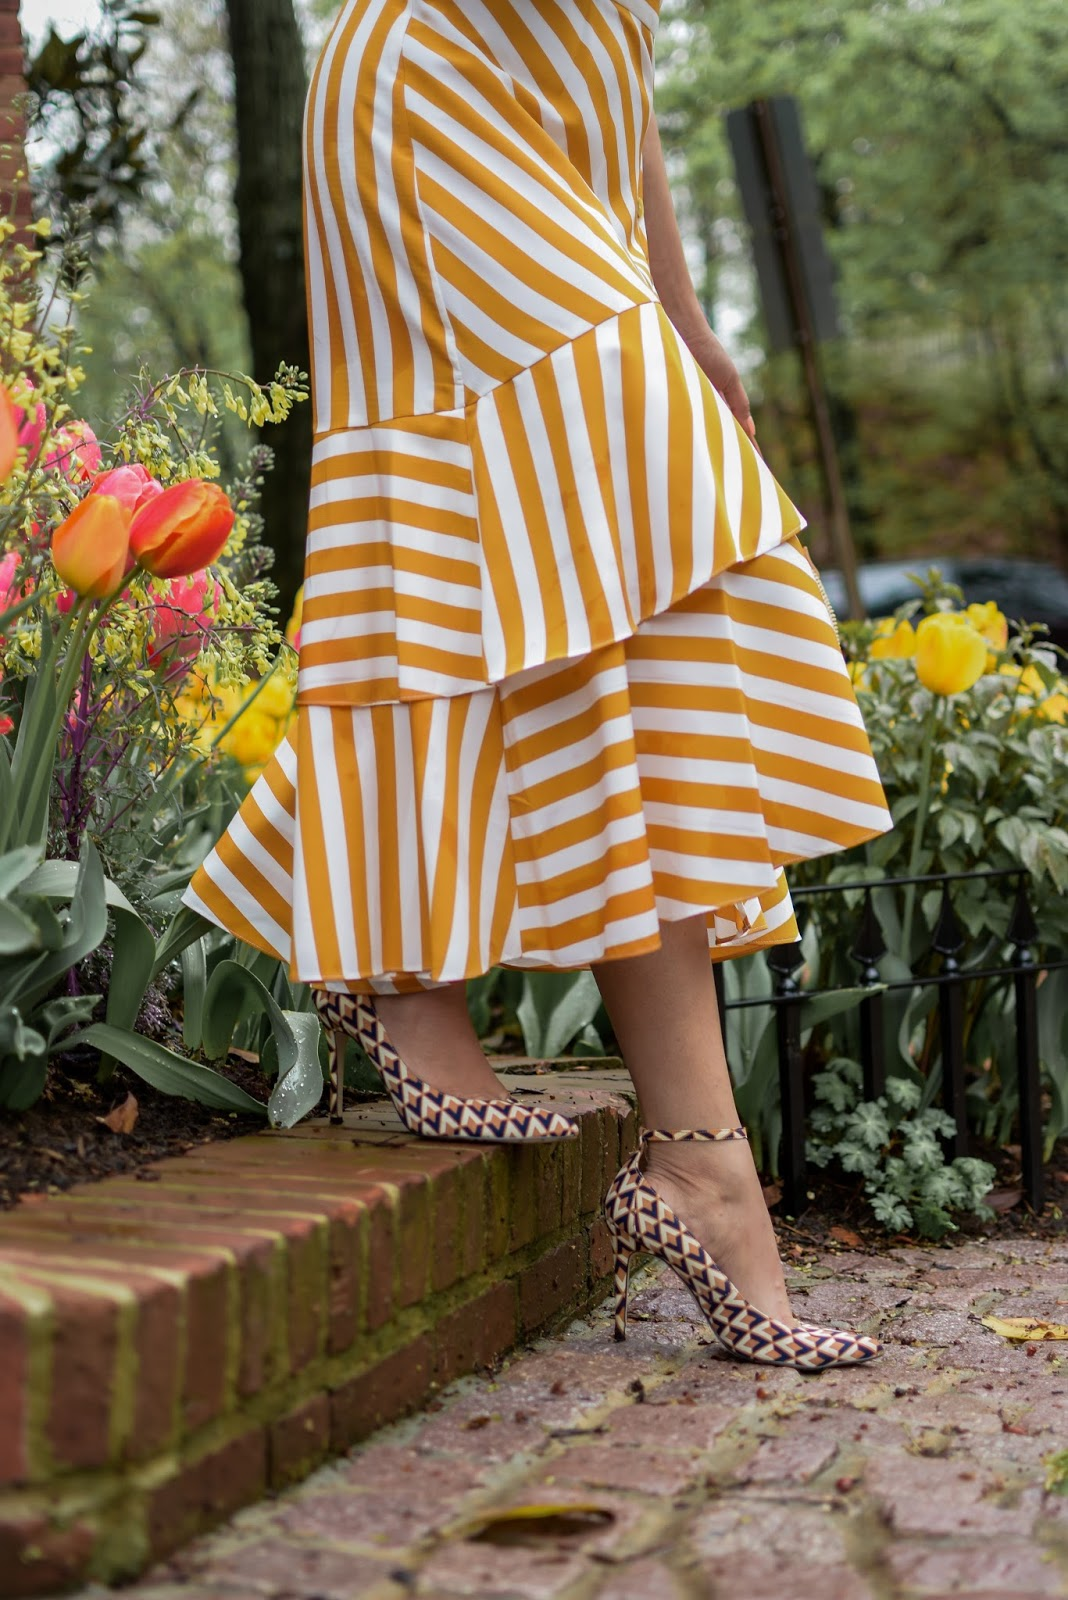 TOPSHOP STRIPE dress nordstrom, spring must have, spring ootd, spring fashion, pri t on print, yellow stripe dress, street ootd, myriad musings